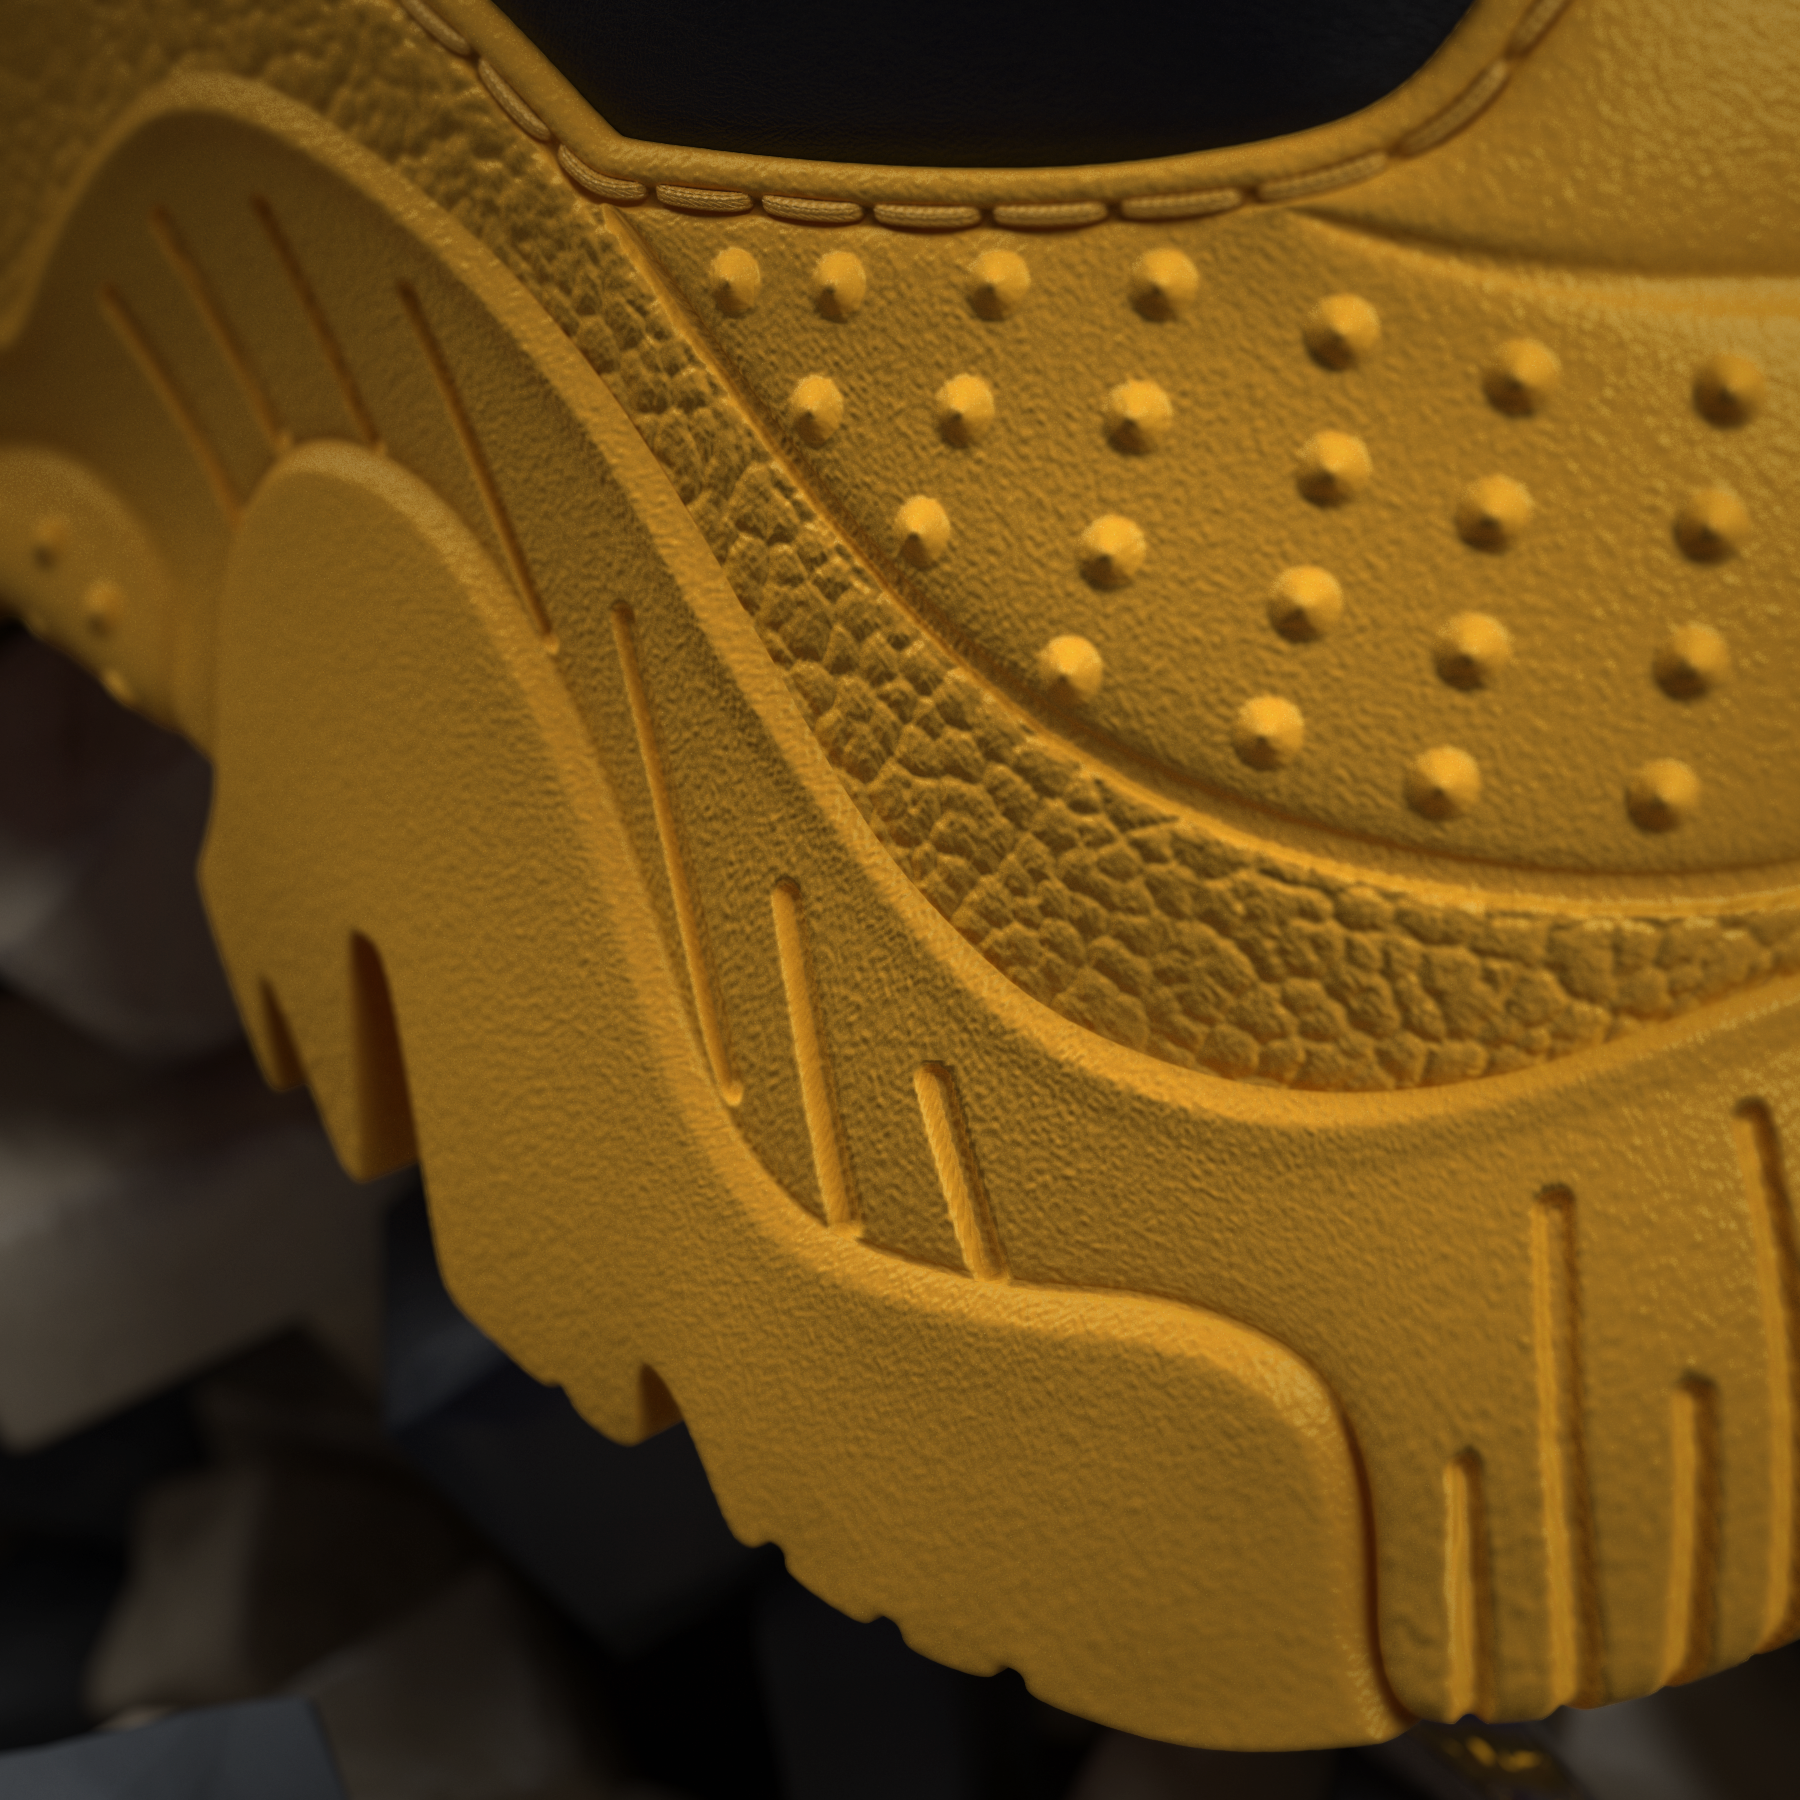 Sneaker's sole detail, back view.